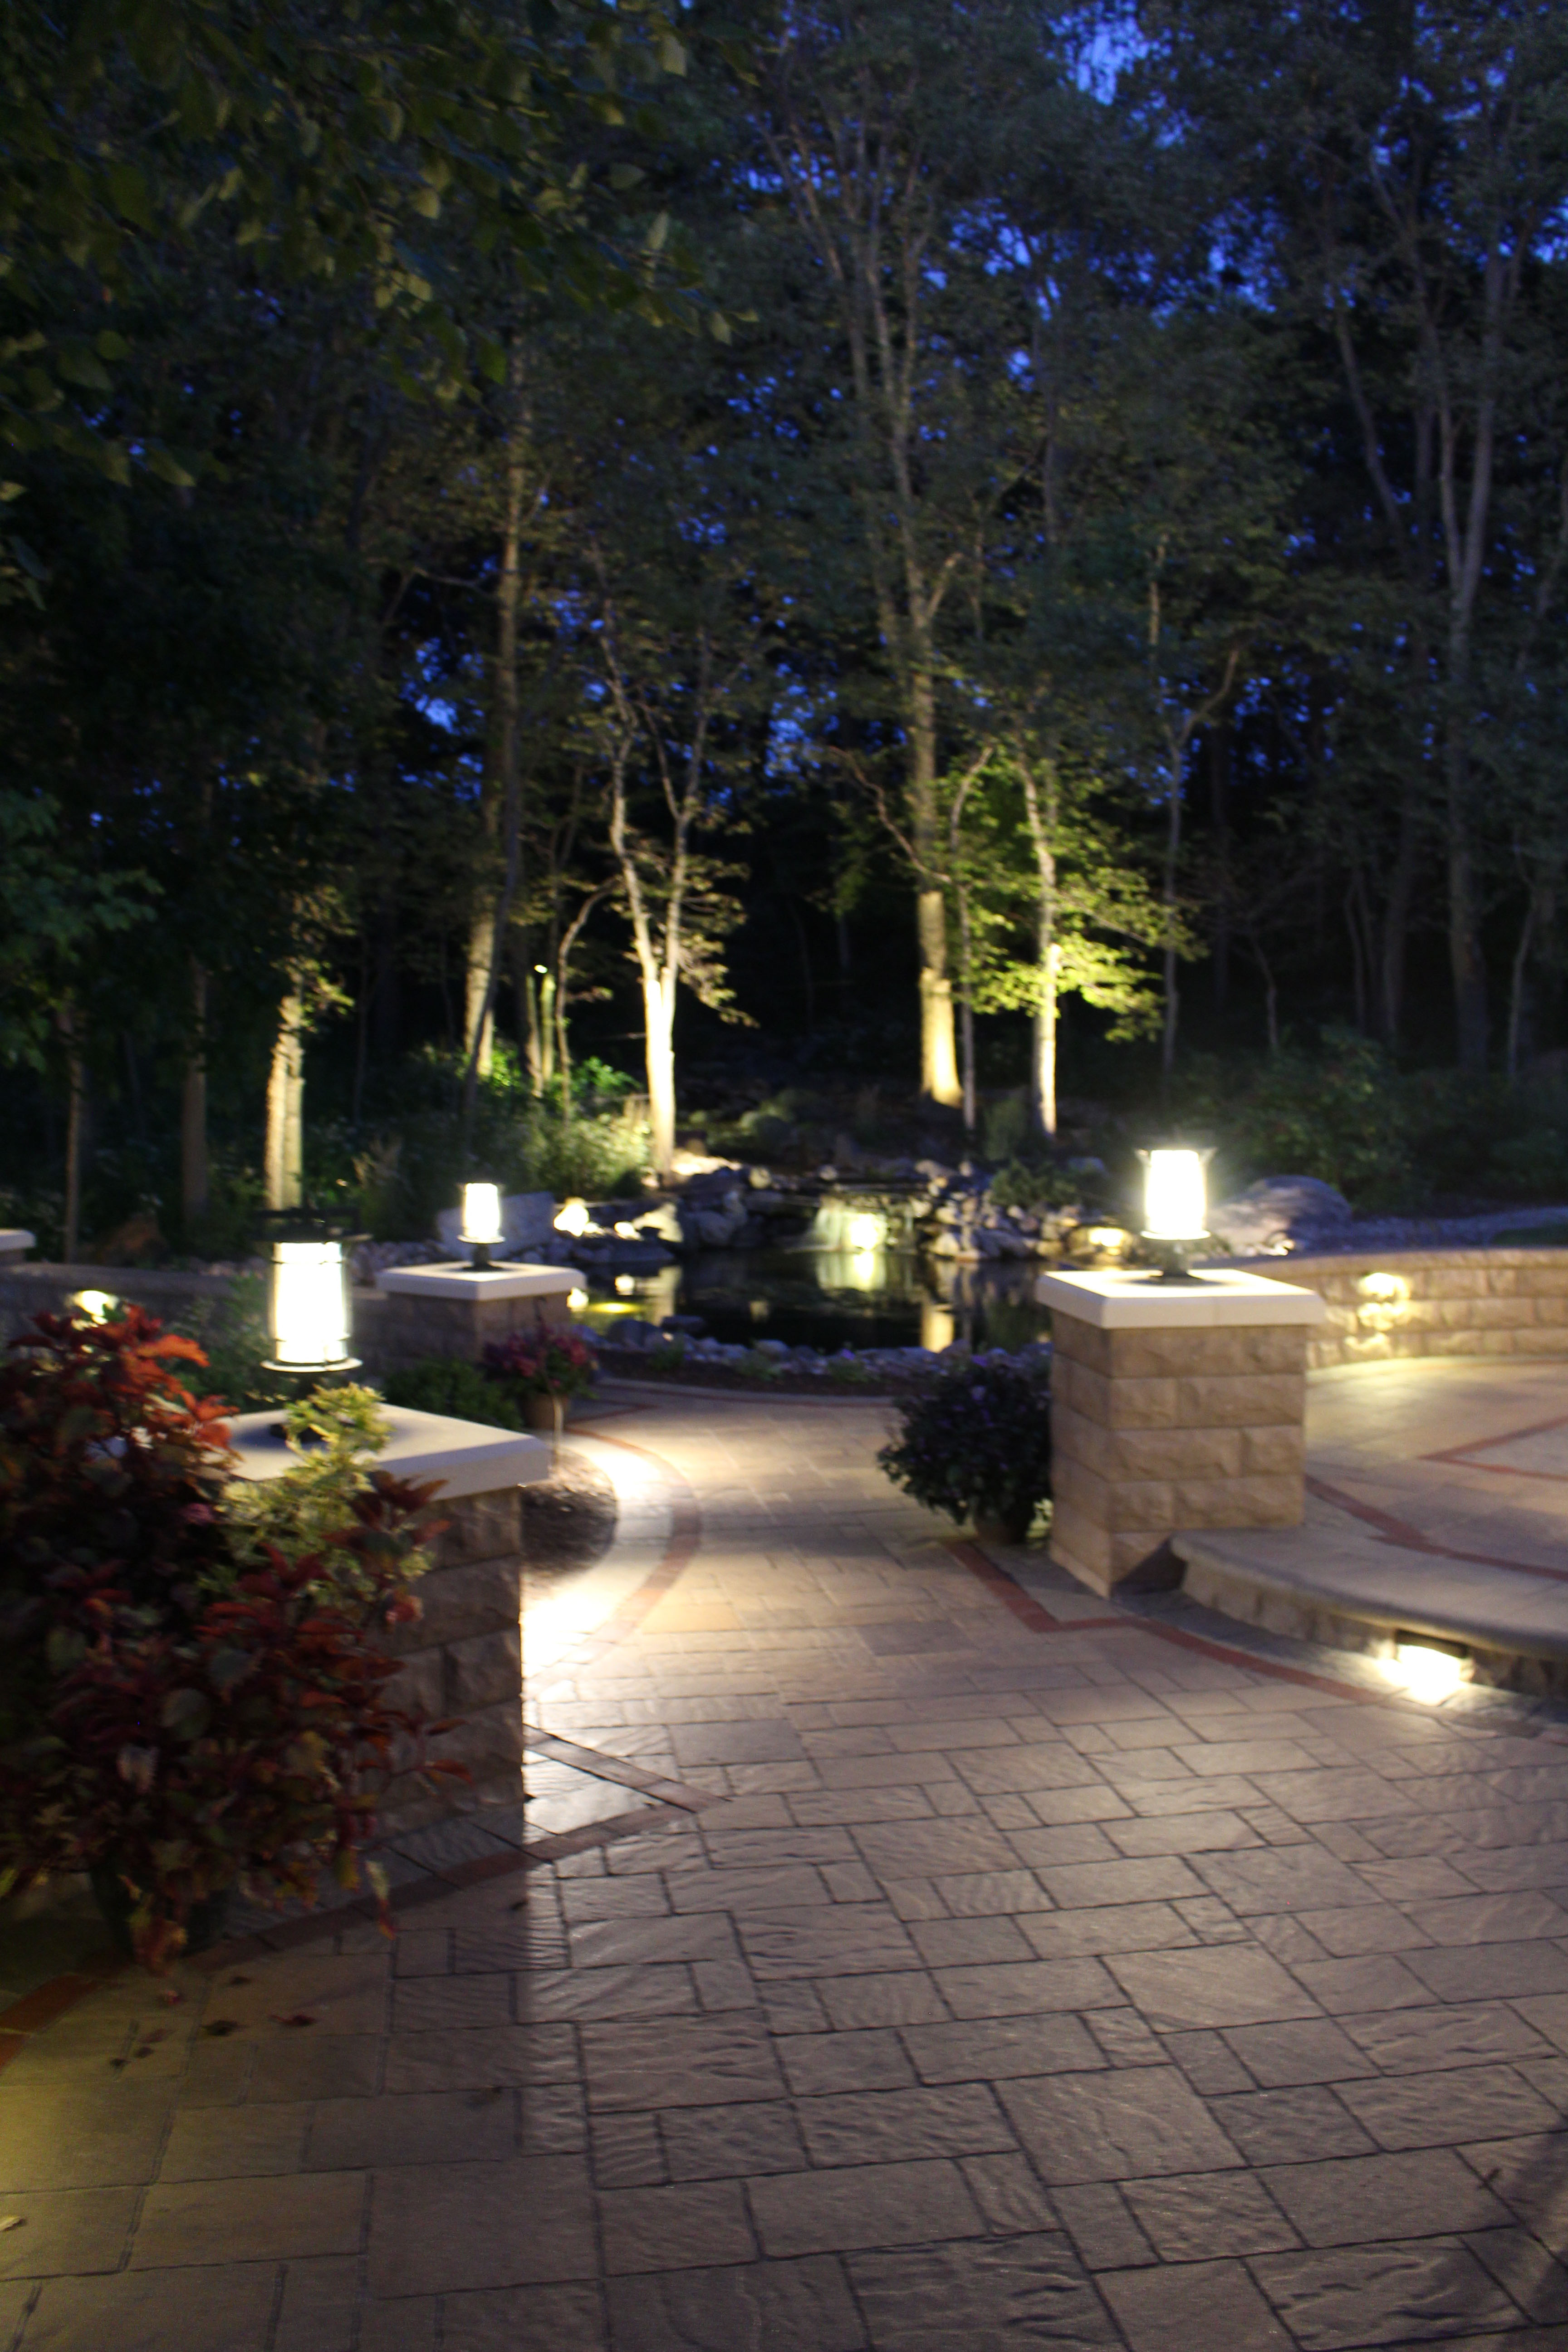 Landscape Lighting For Safety And Beauty By Celtic Landscaping Wiring Security Lights Back Deck Installing Exterior Can Dramatically Change The Look Feel Of Any Yard Helping You Extend Enjoy More Your Living Space